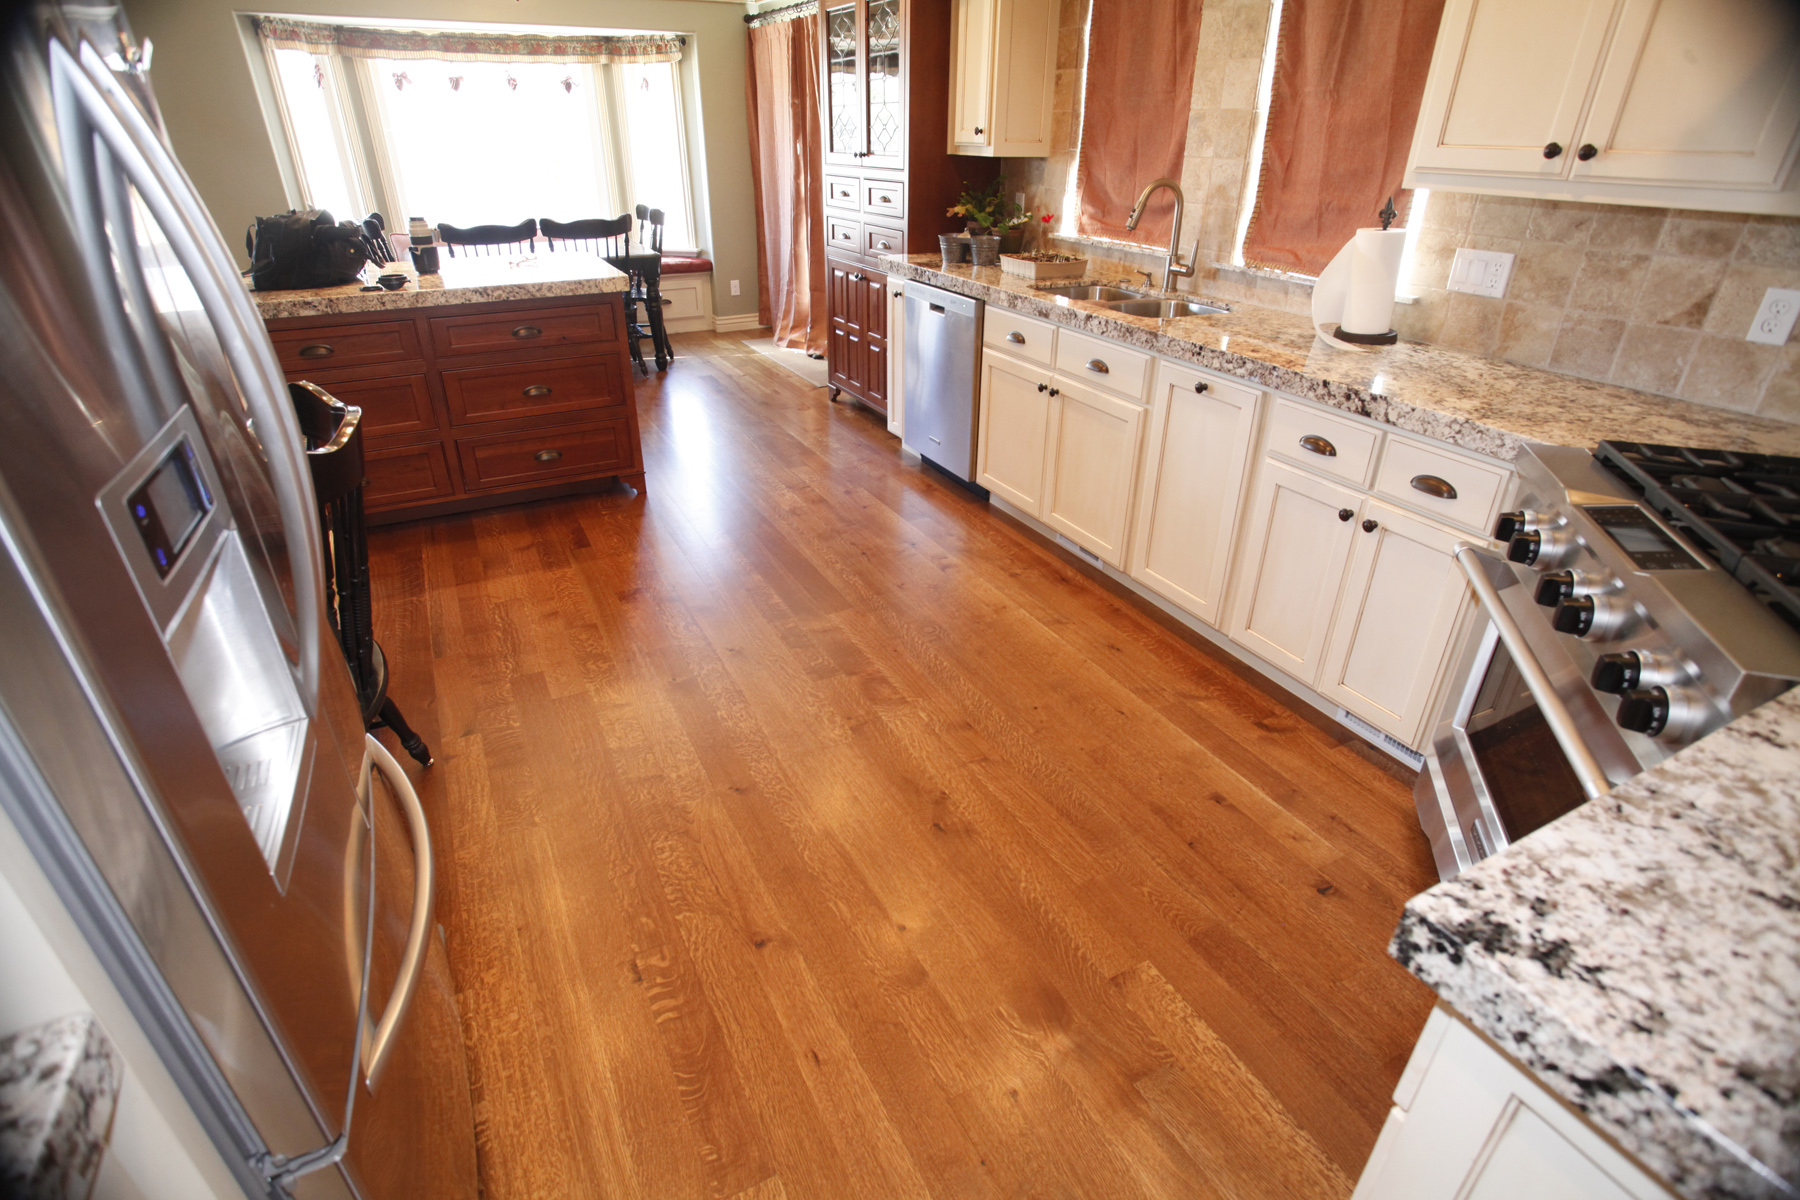 Oil vs water based polyurethane: Which is better for Hardwood floors in kitchen pictures